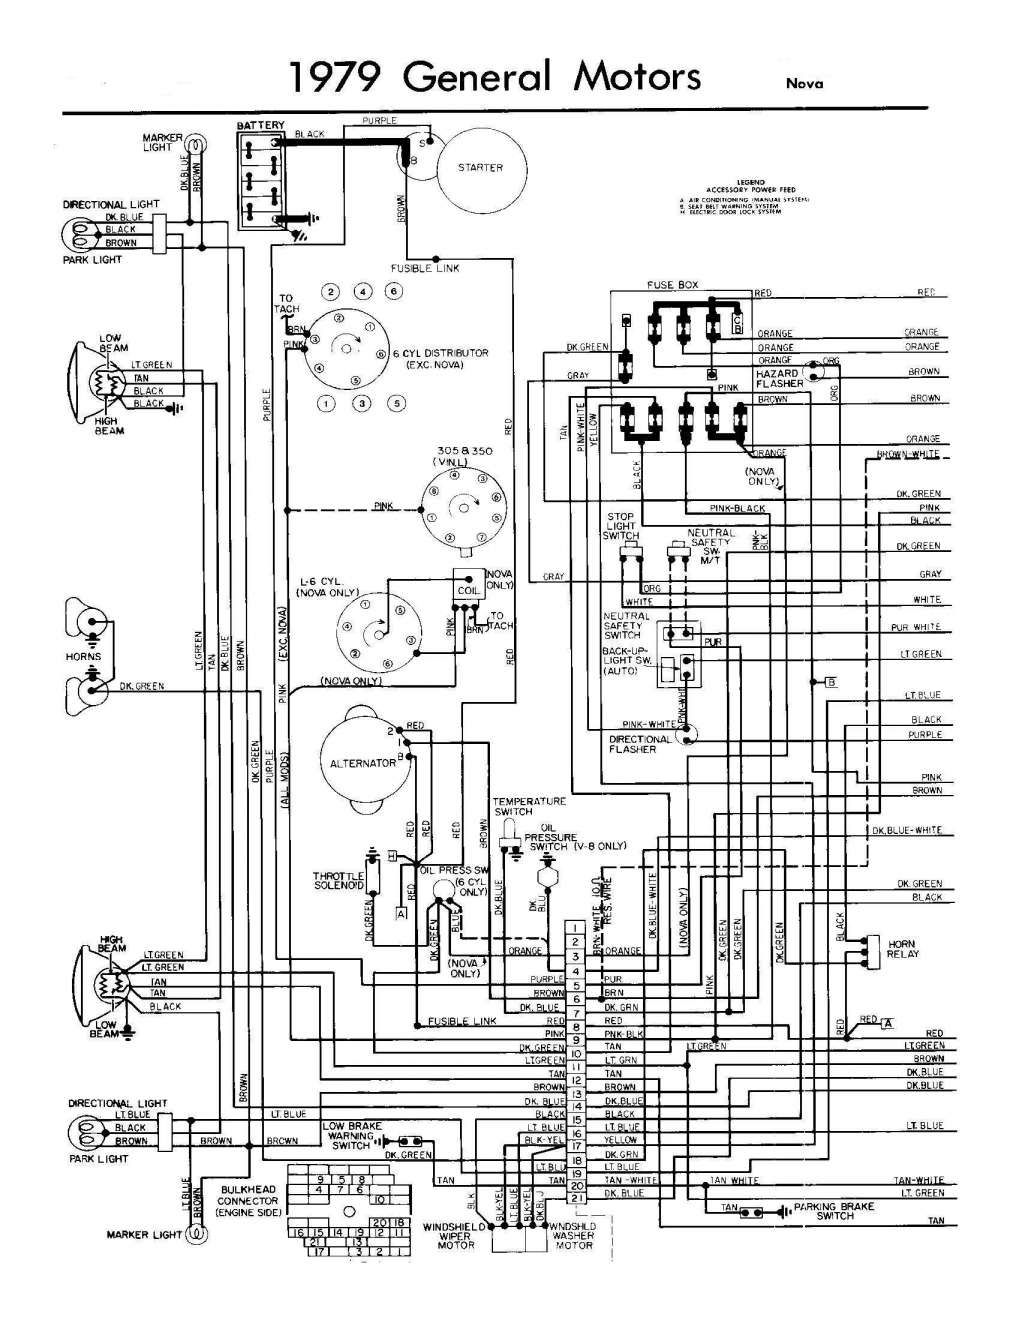 15 94 Chevy Truck Fuse Box Diagram Chevy Trucks 1979 Chevy Truck 79 Chevy Truck